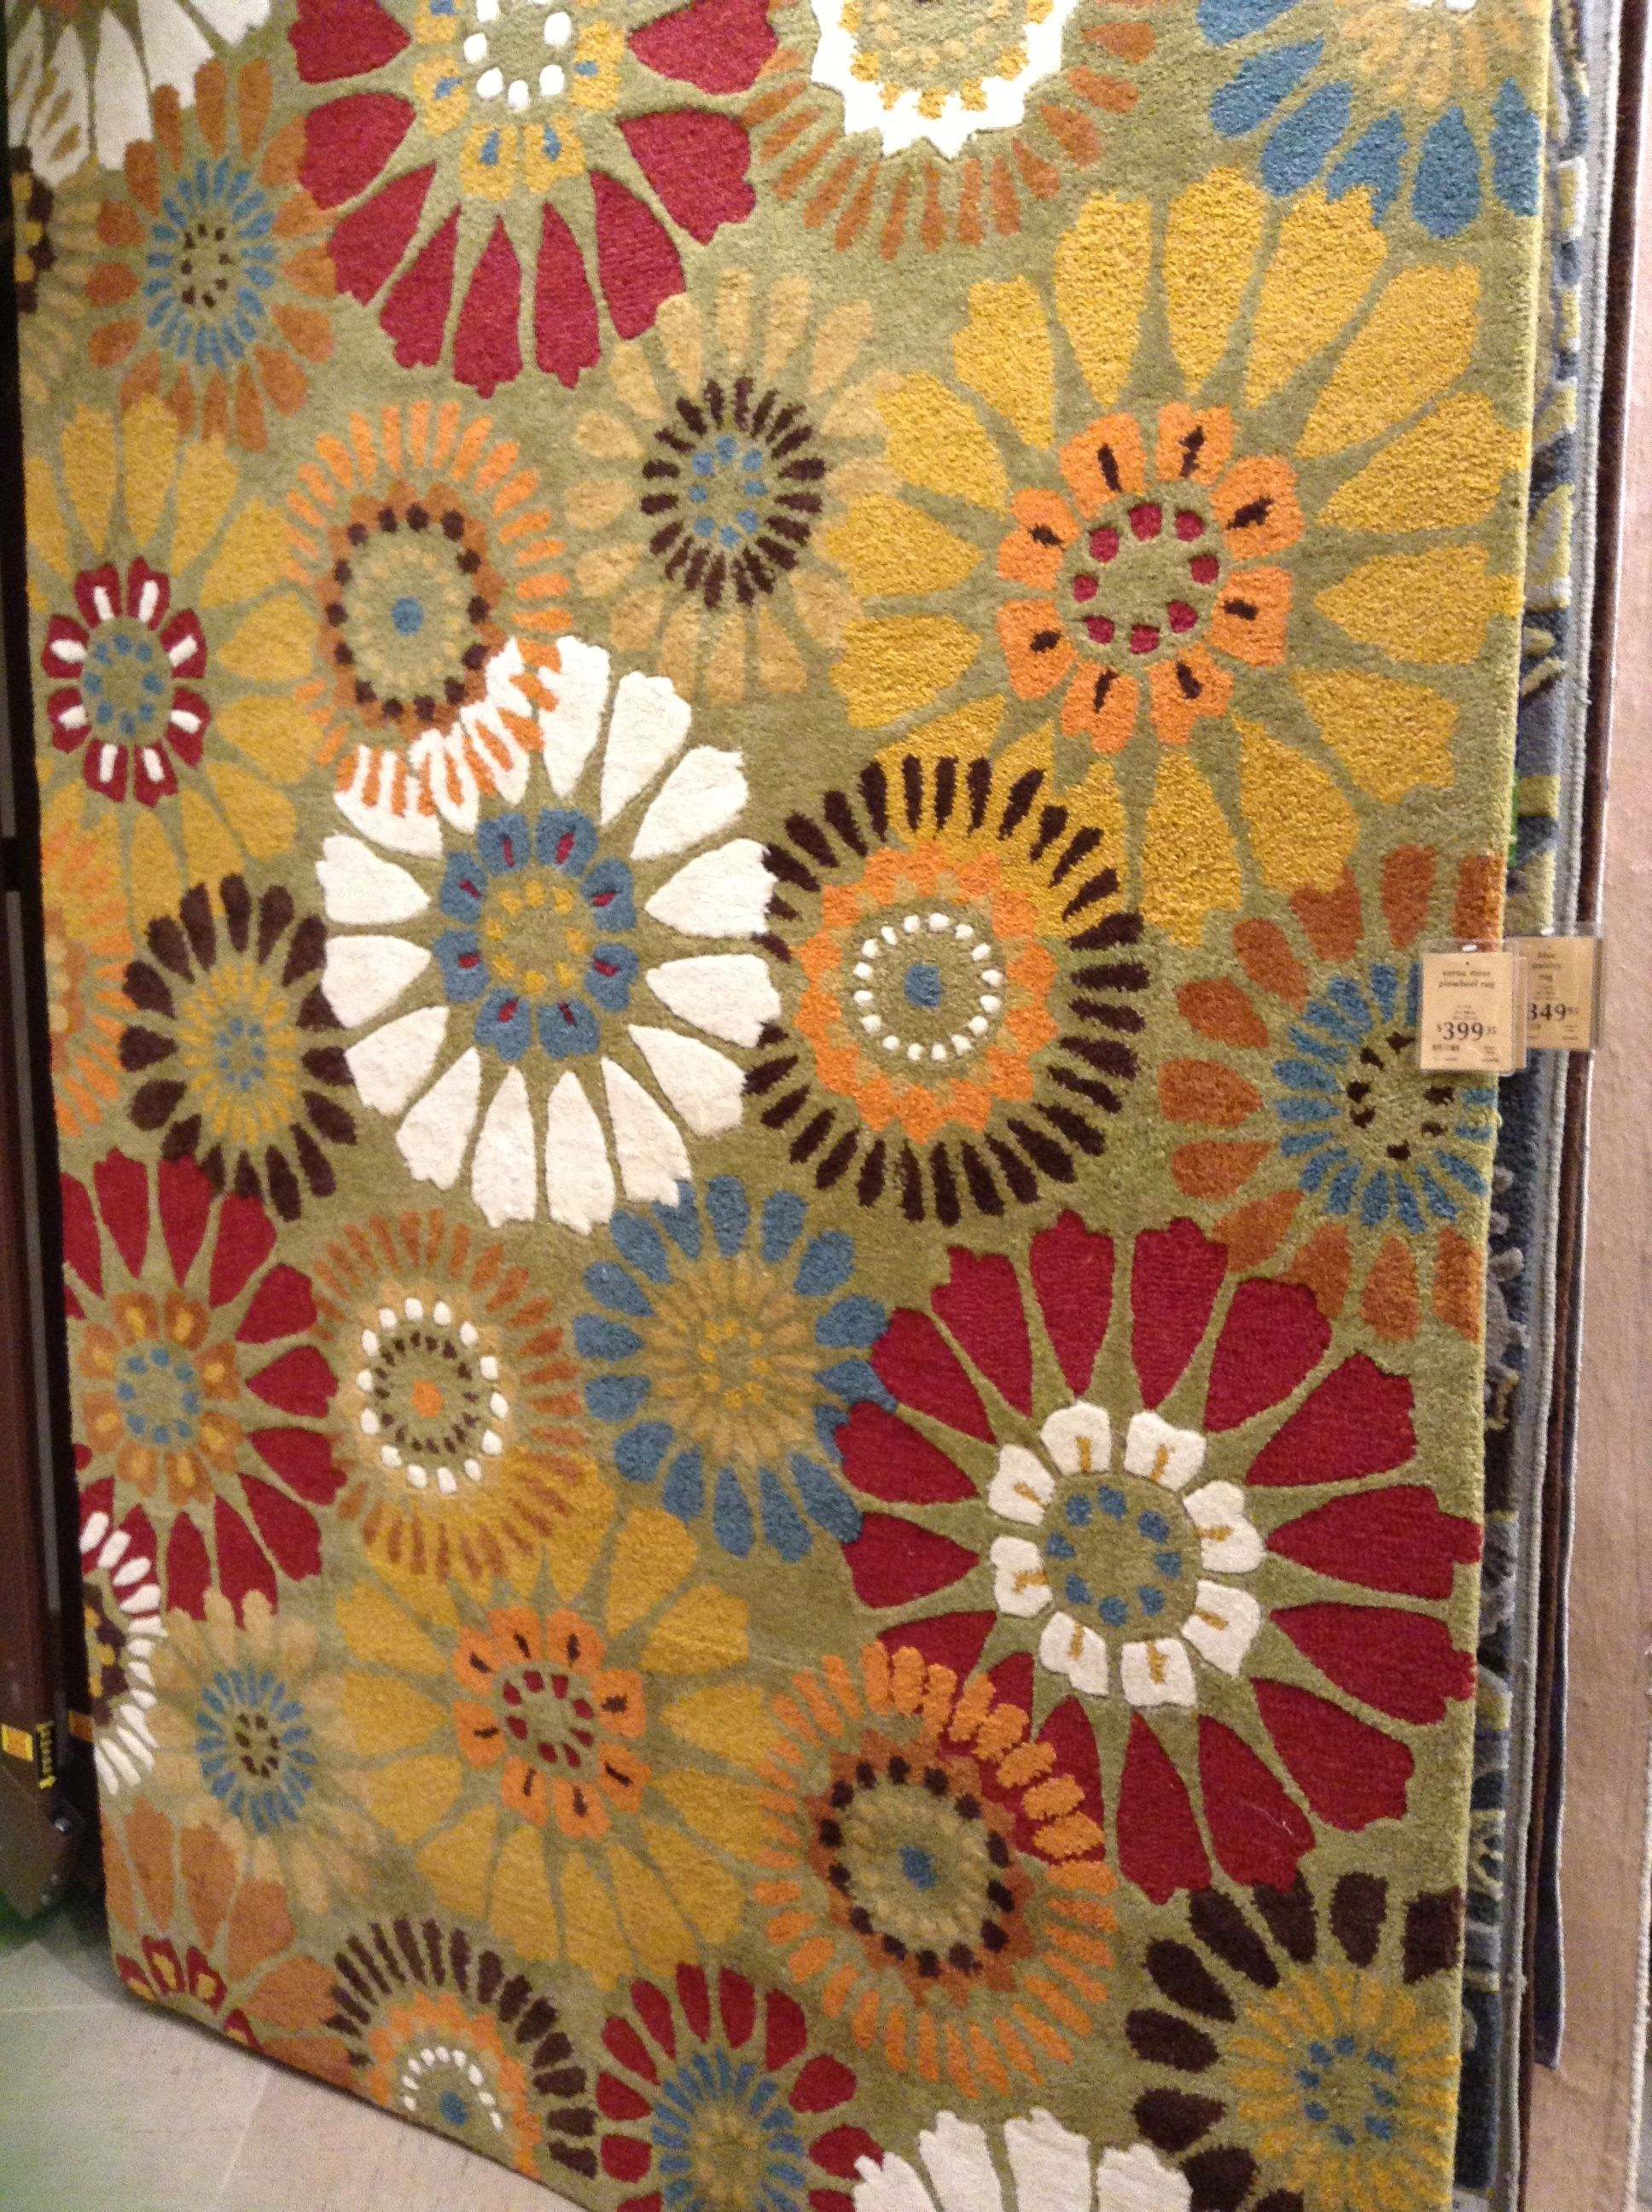 Cool Rug In Pier One Imports With An Interesting Mandala Type